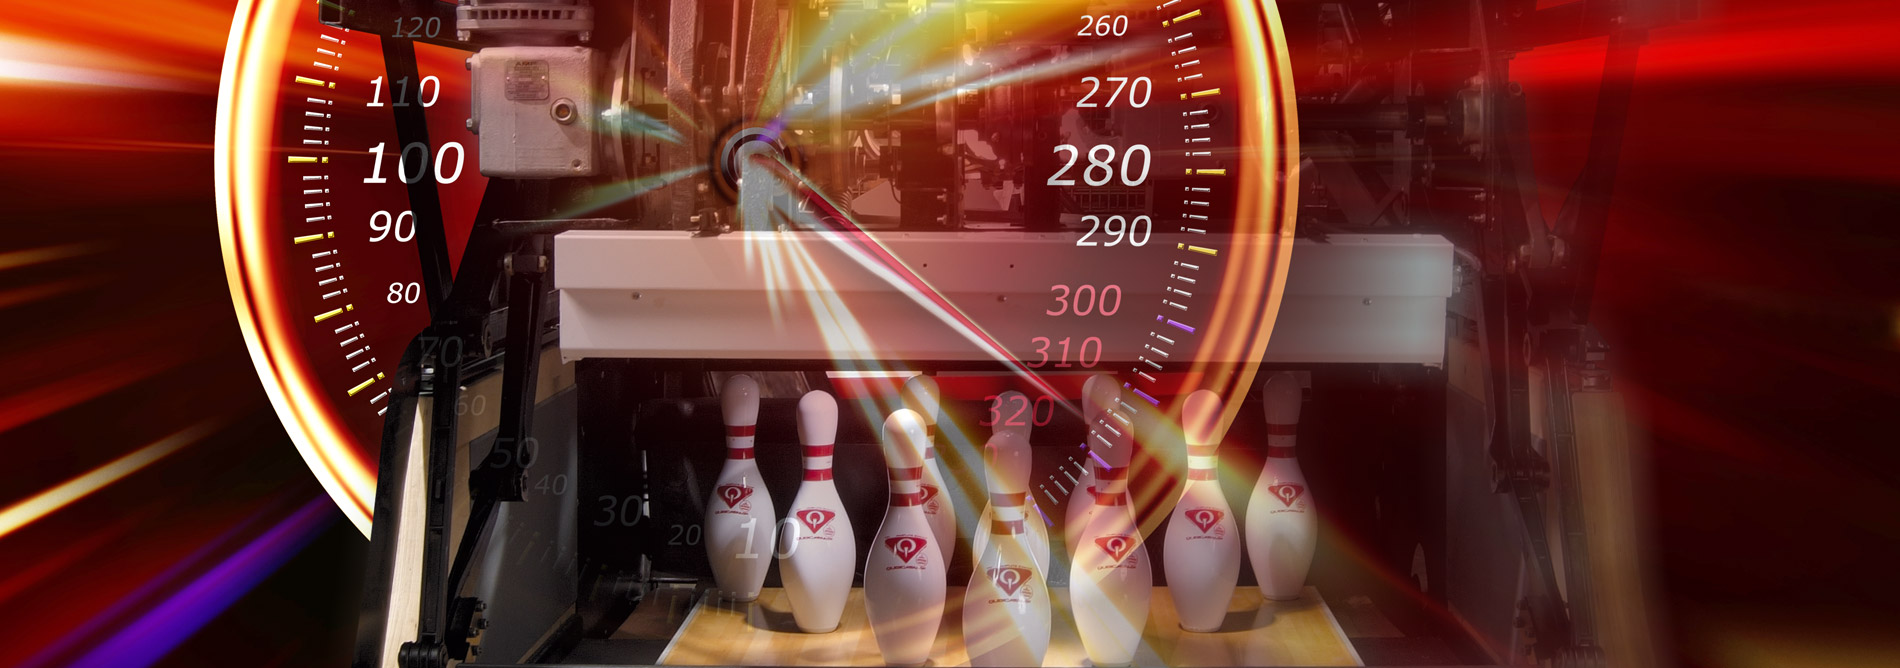 Bowling-QubicaAMF-PINSPOTTERS-upgrade-banner.jpg